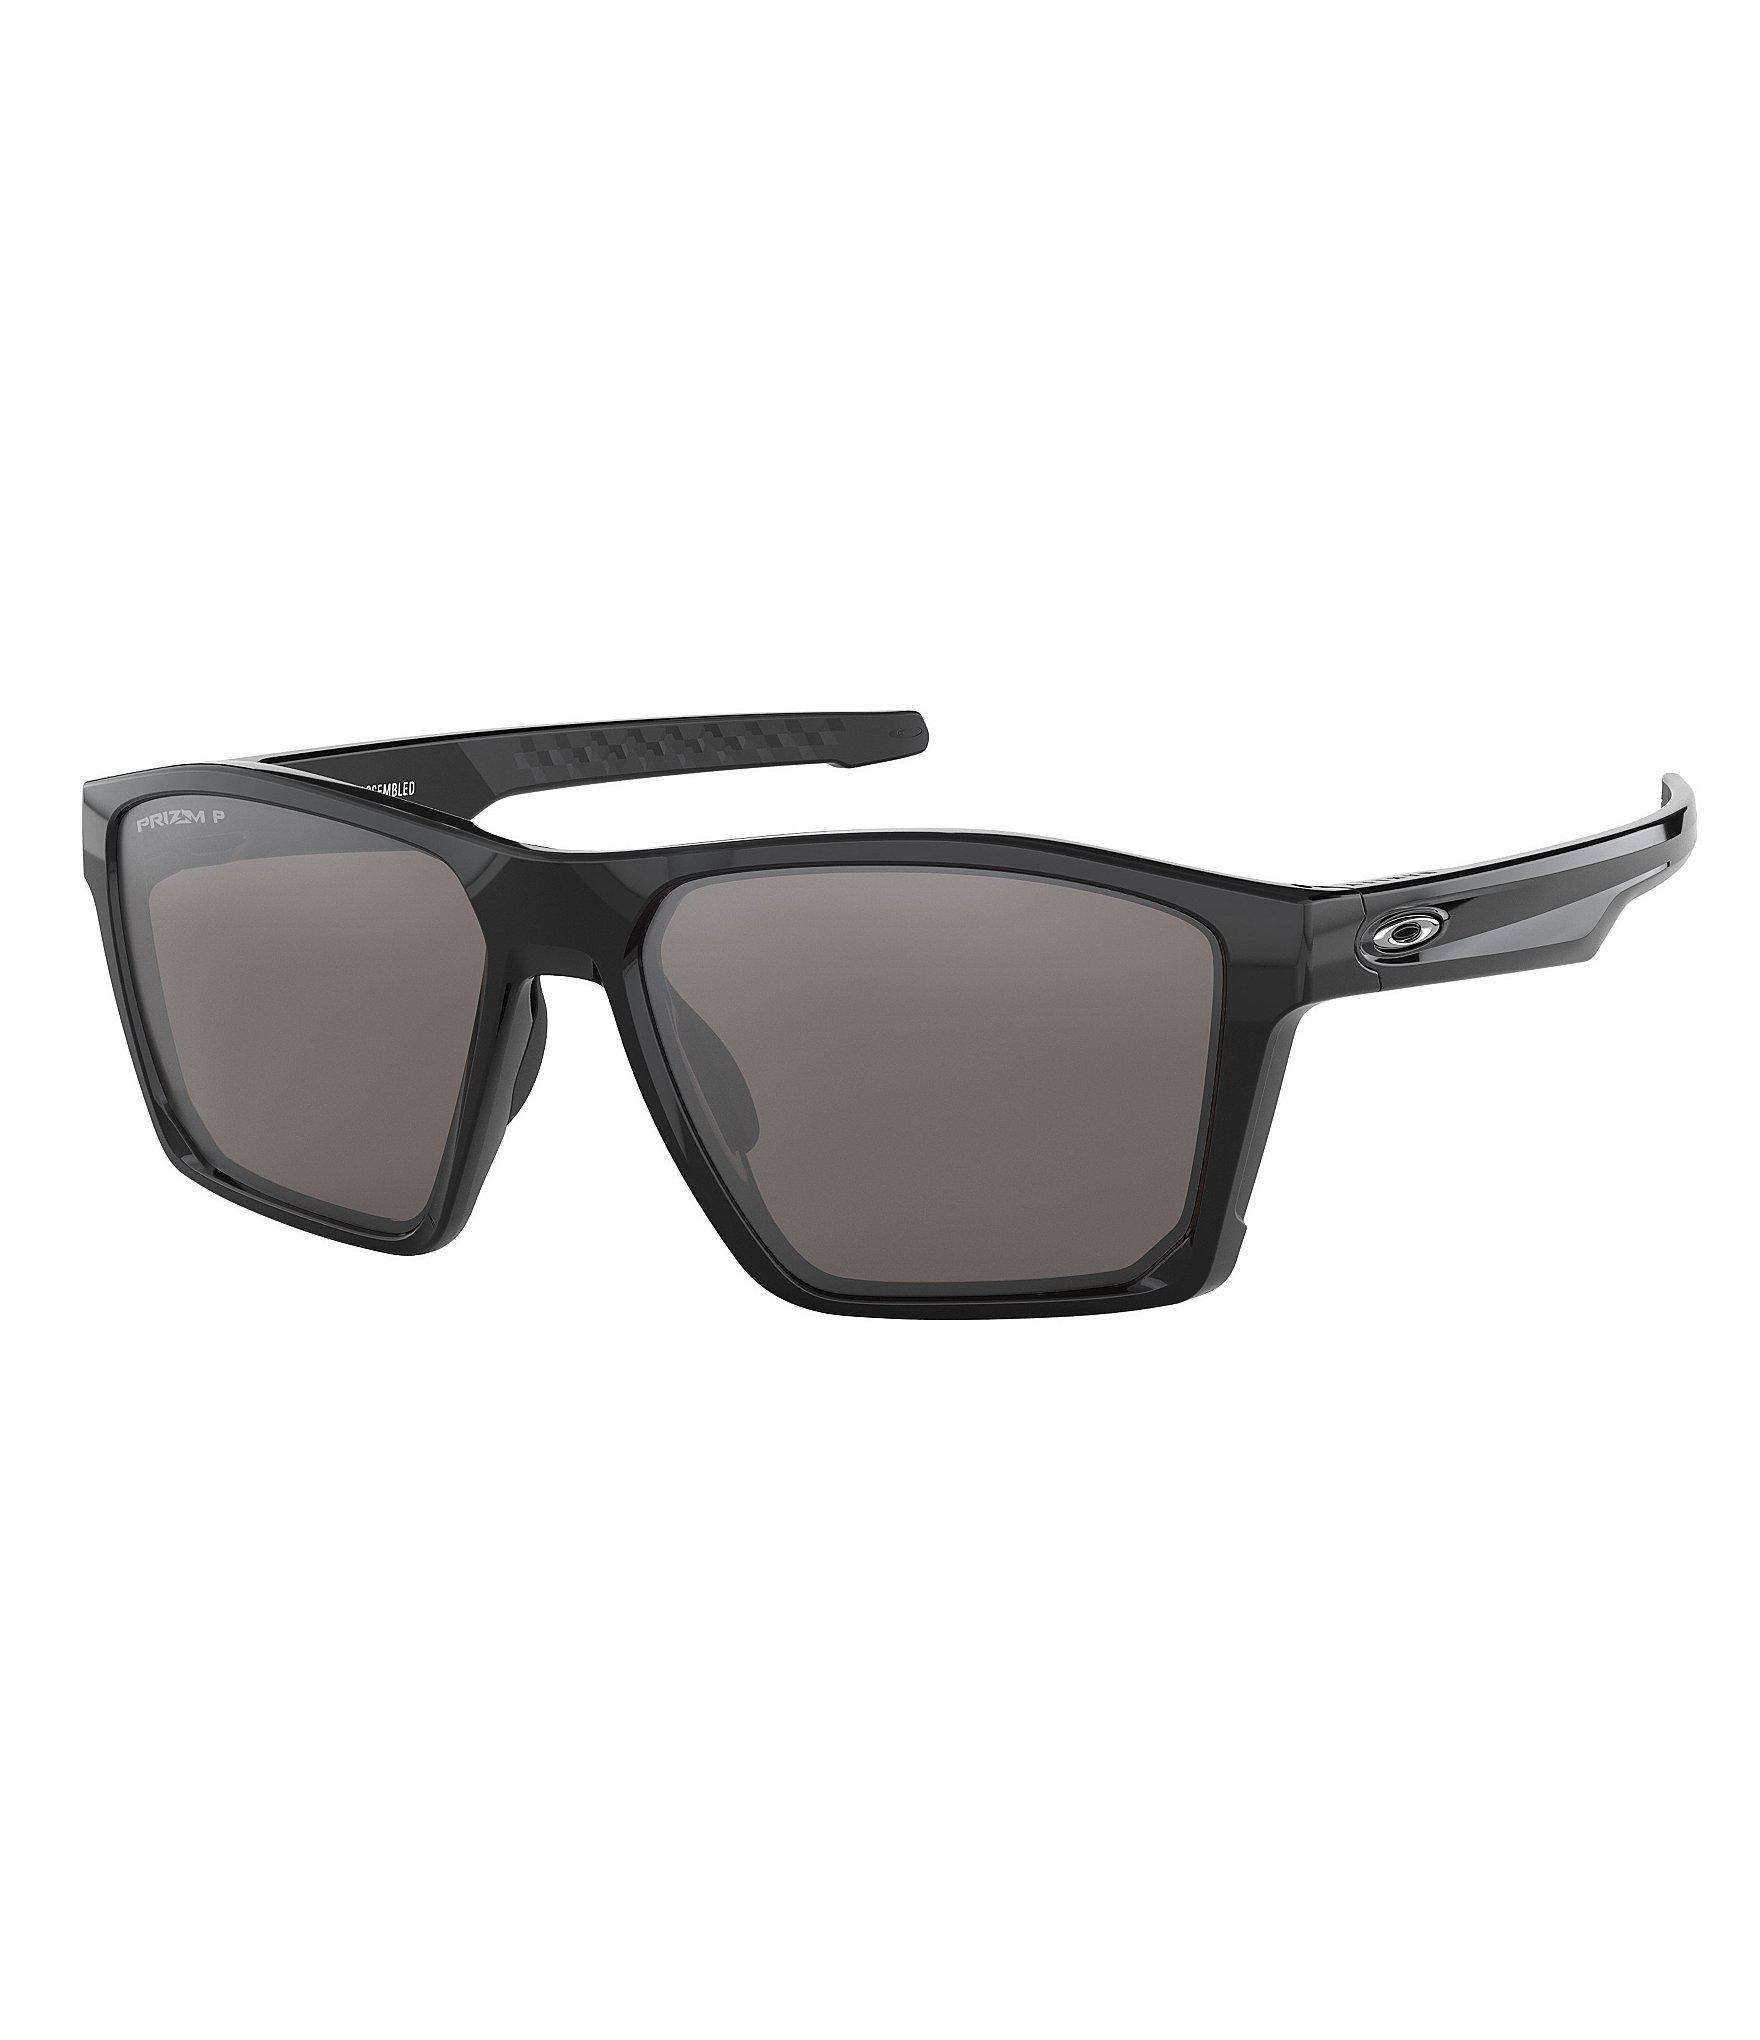 855b8052a8 Lyst - Oakley Mens Target Line Polarized Sunglasses in Black for Men